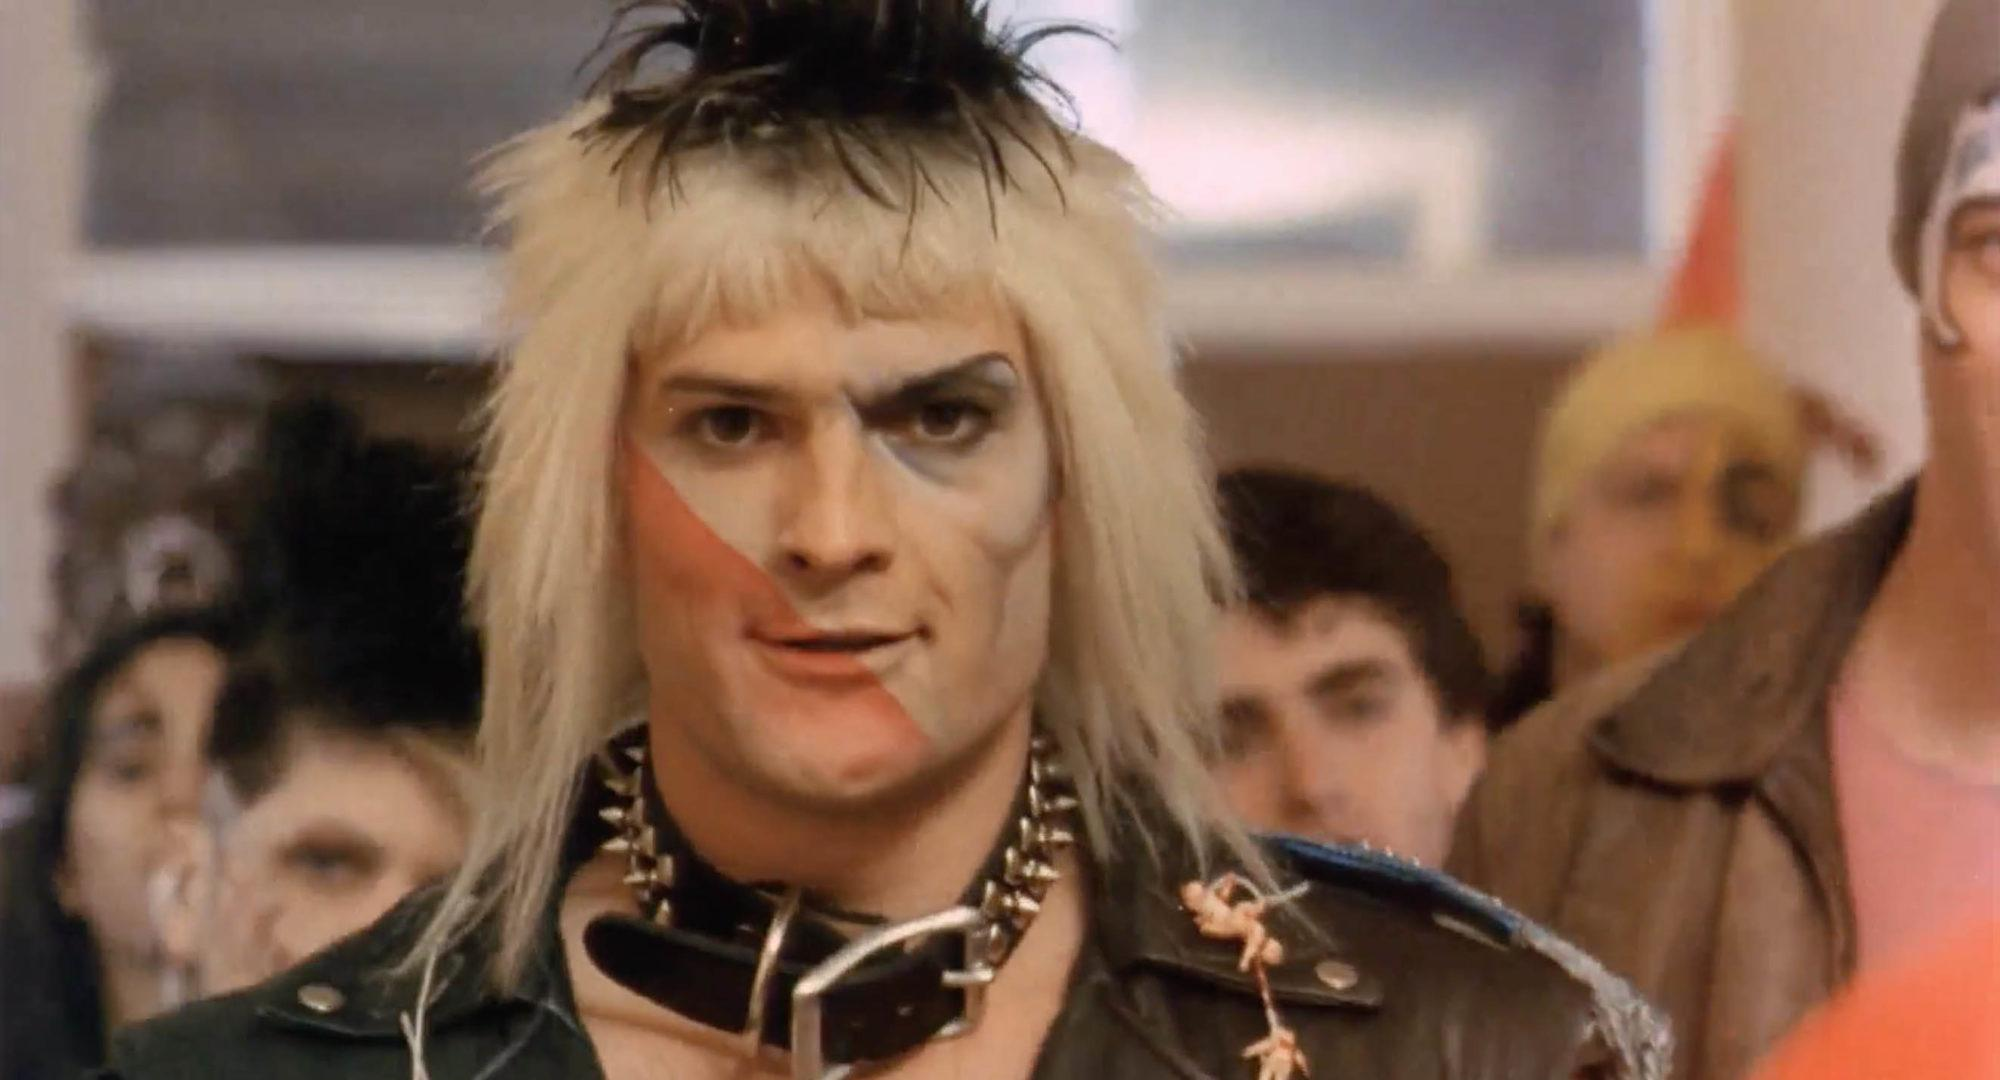 Robert Prichard in Class Of Nuke 'Em High (1986)